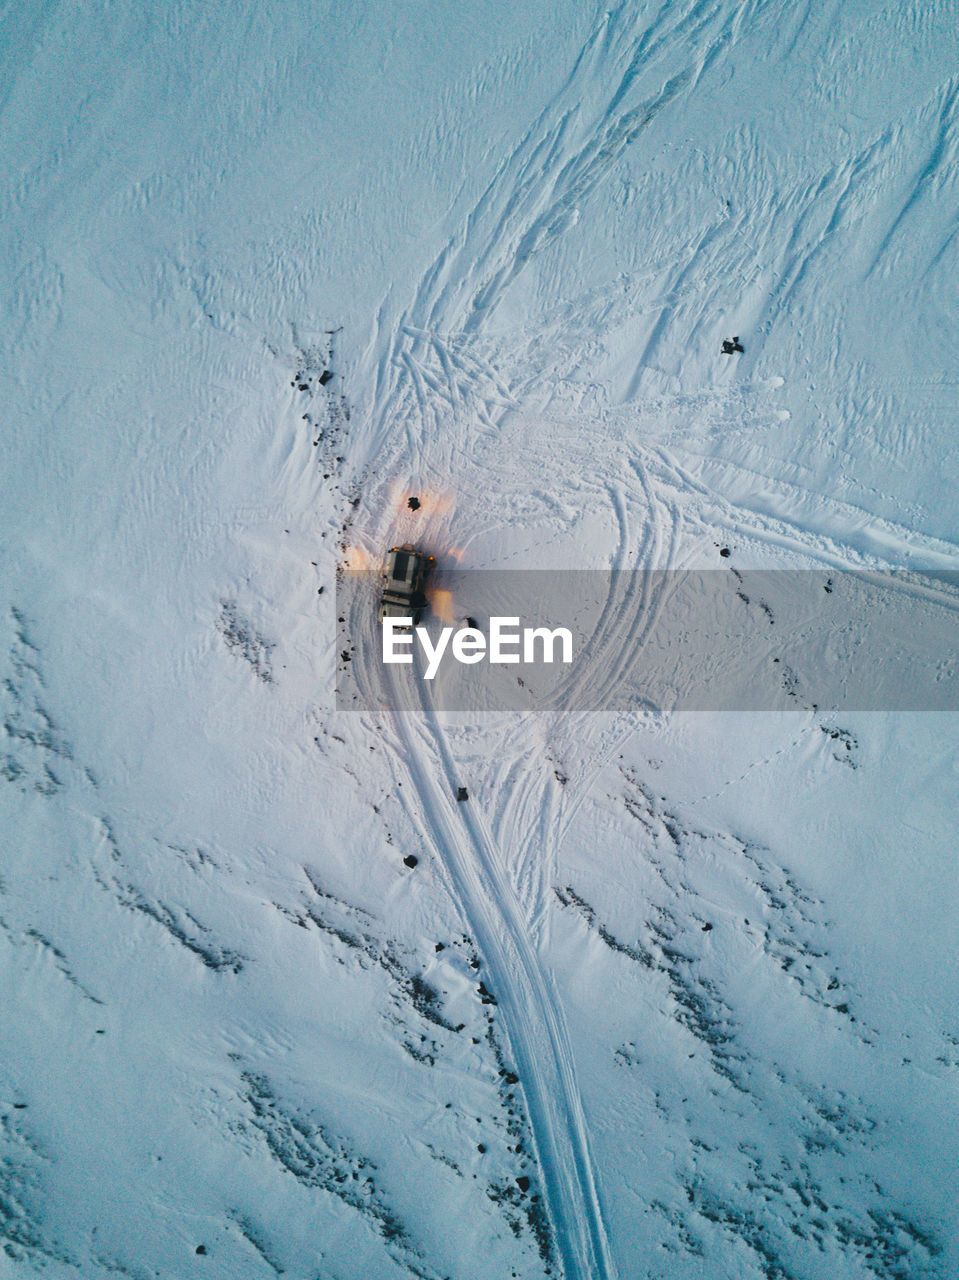 High Angle View Of Car On Snow Covered Landscape